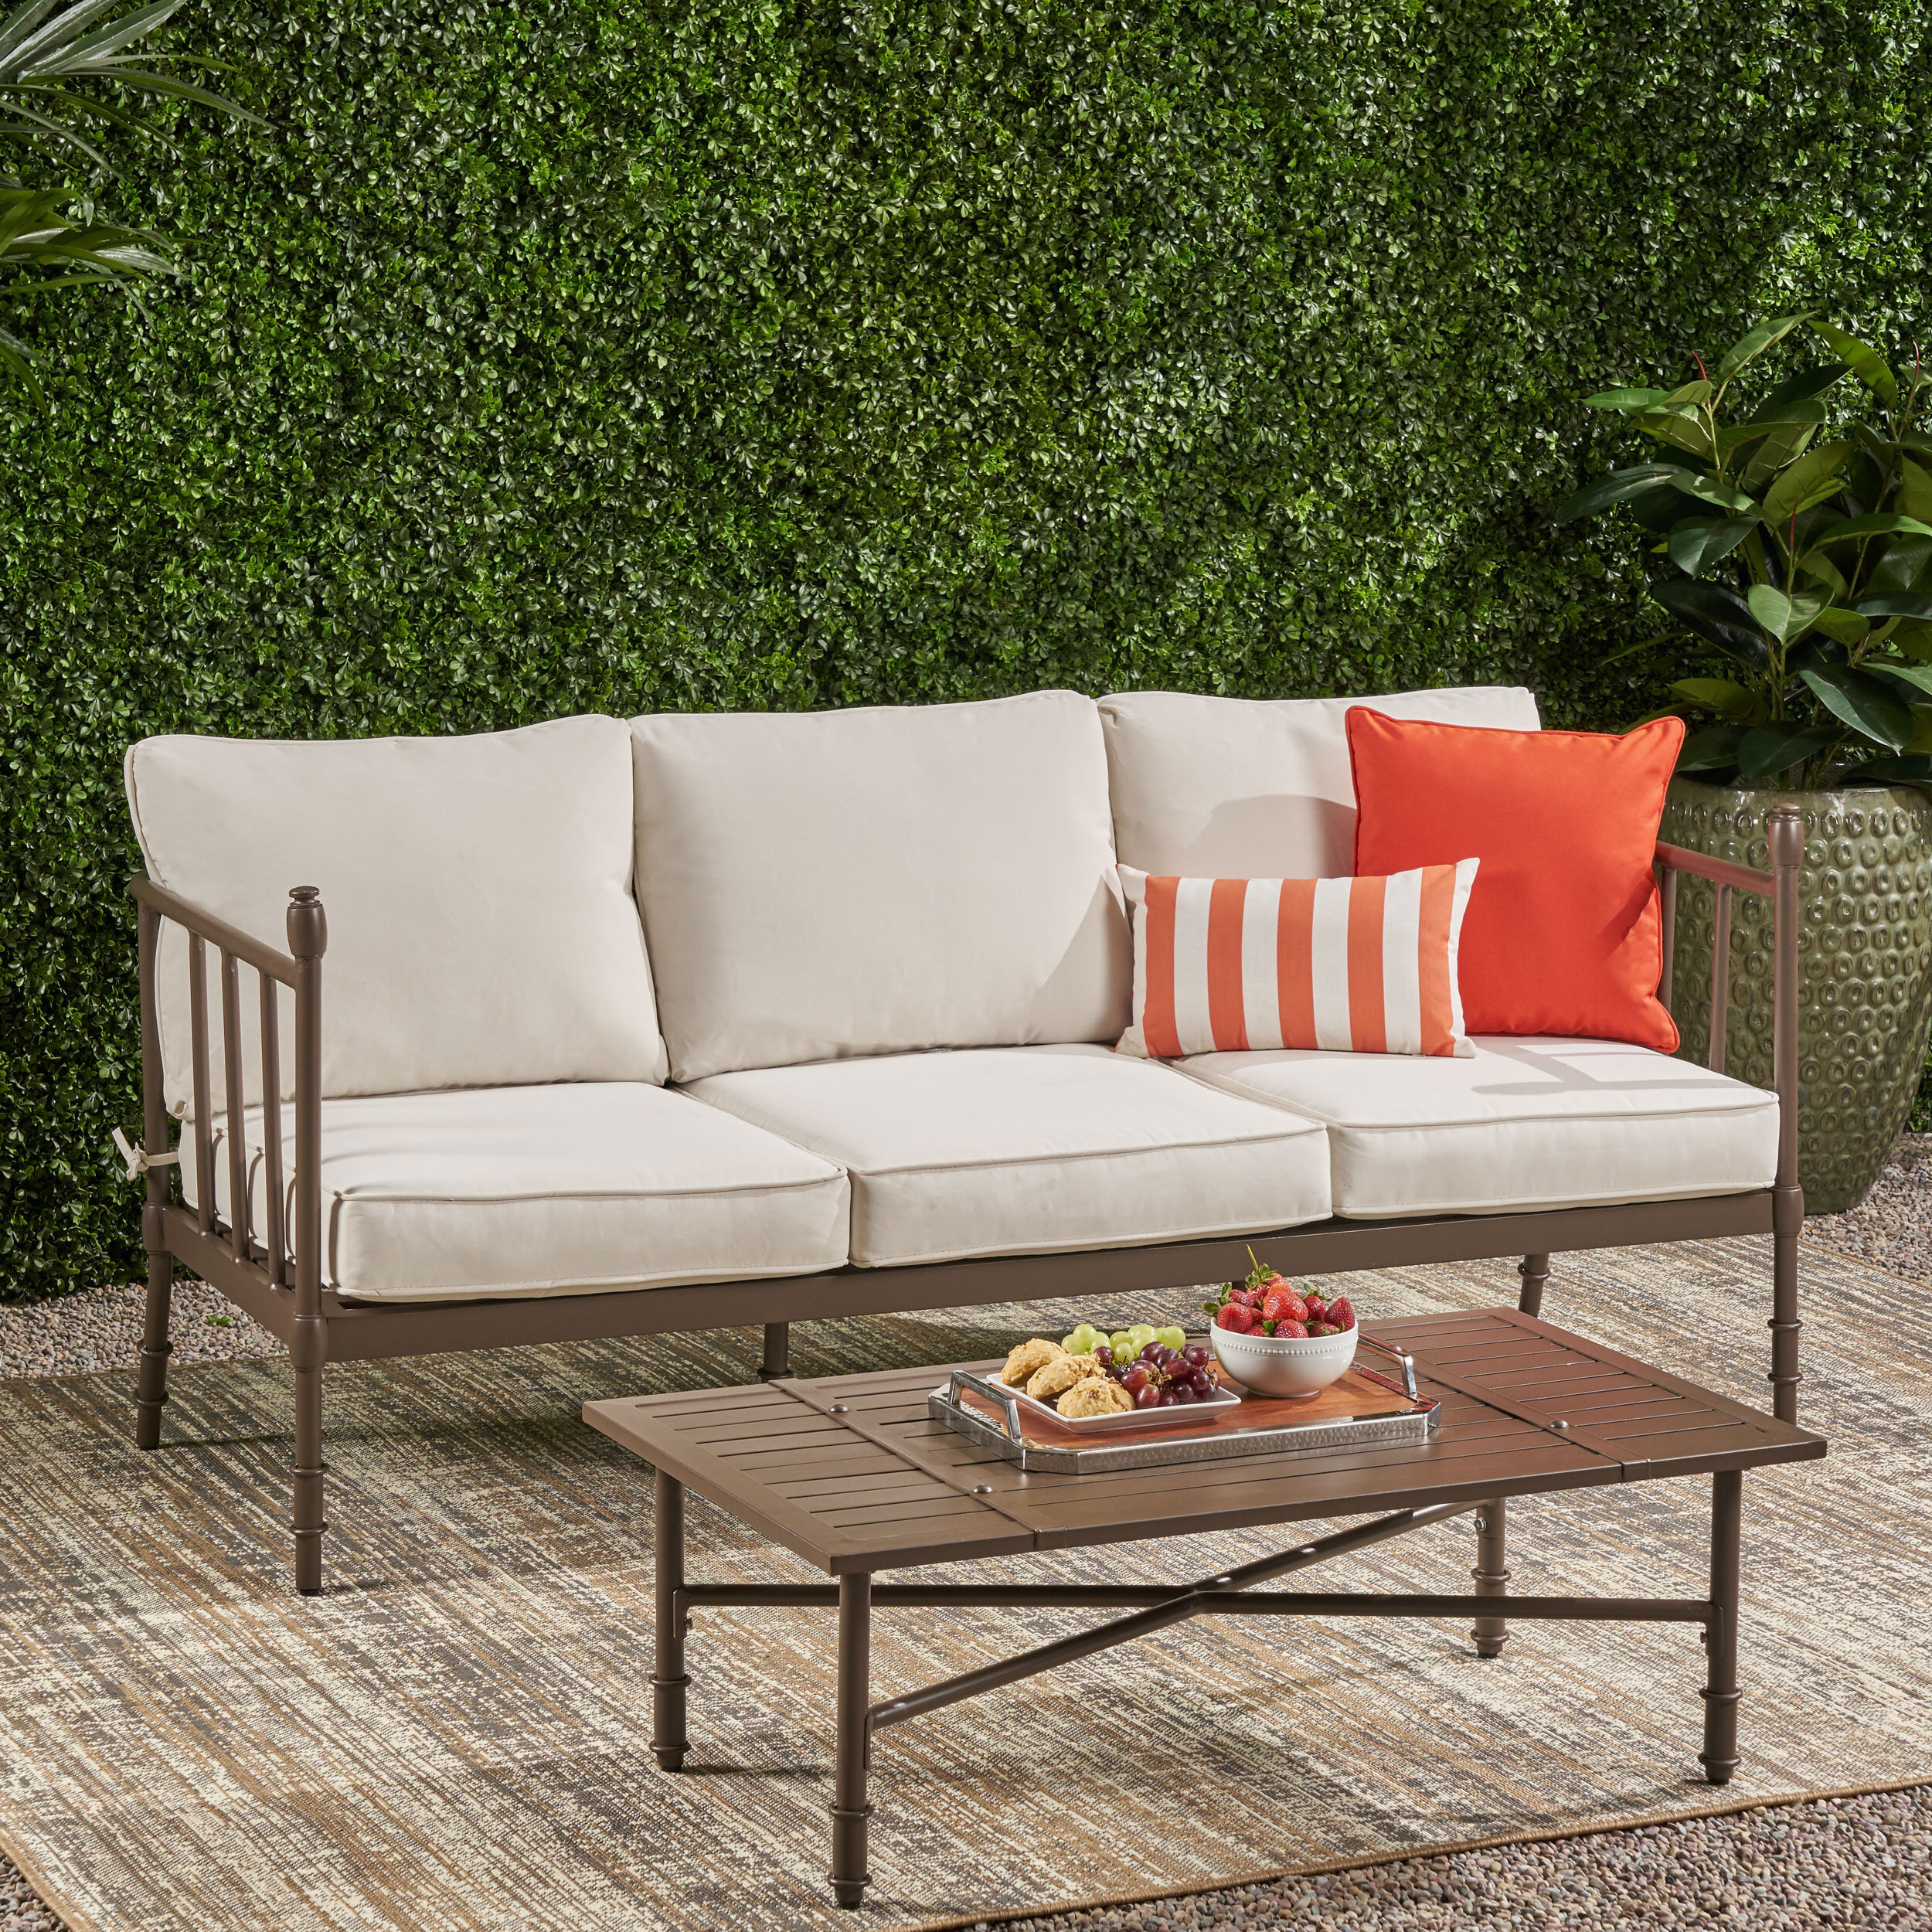 Astrid Wicker Patio Sofas With Cushions With Fashionable Joule Outdoor Aluminum Patio Sofa With Cushions (View 7 of 25)